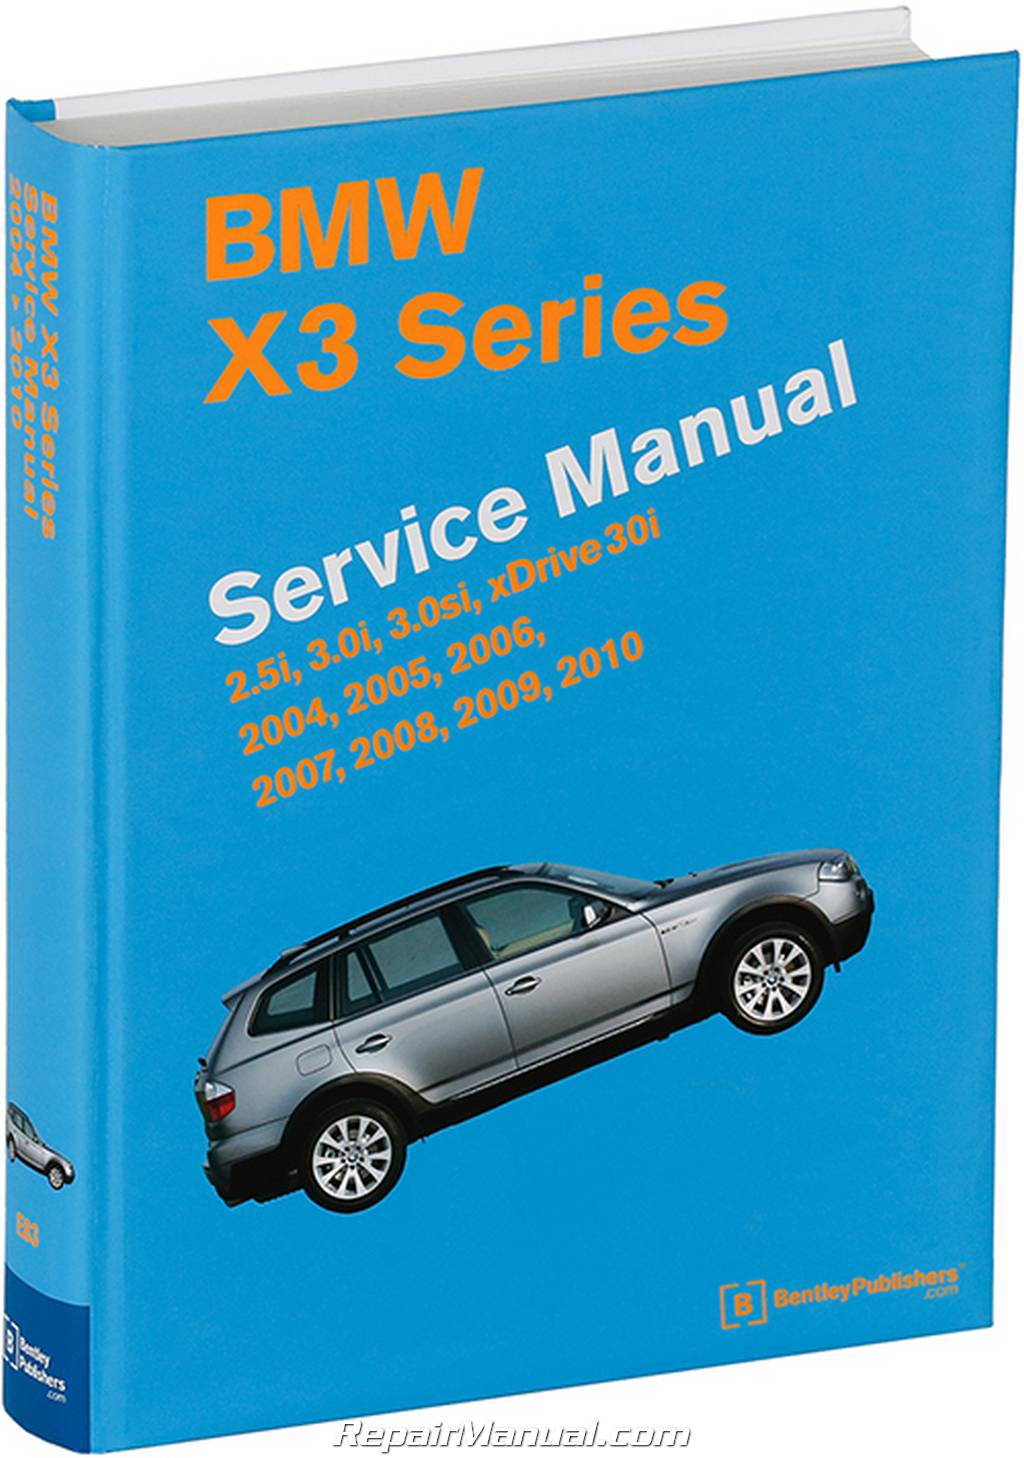 X3 Owner Manual 2009 Auto Electrical Wiring Diagram Bmw Fuse Box M54 N52 Engines Printed Service 2004